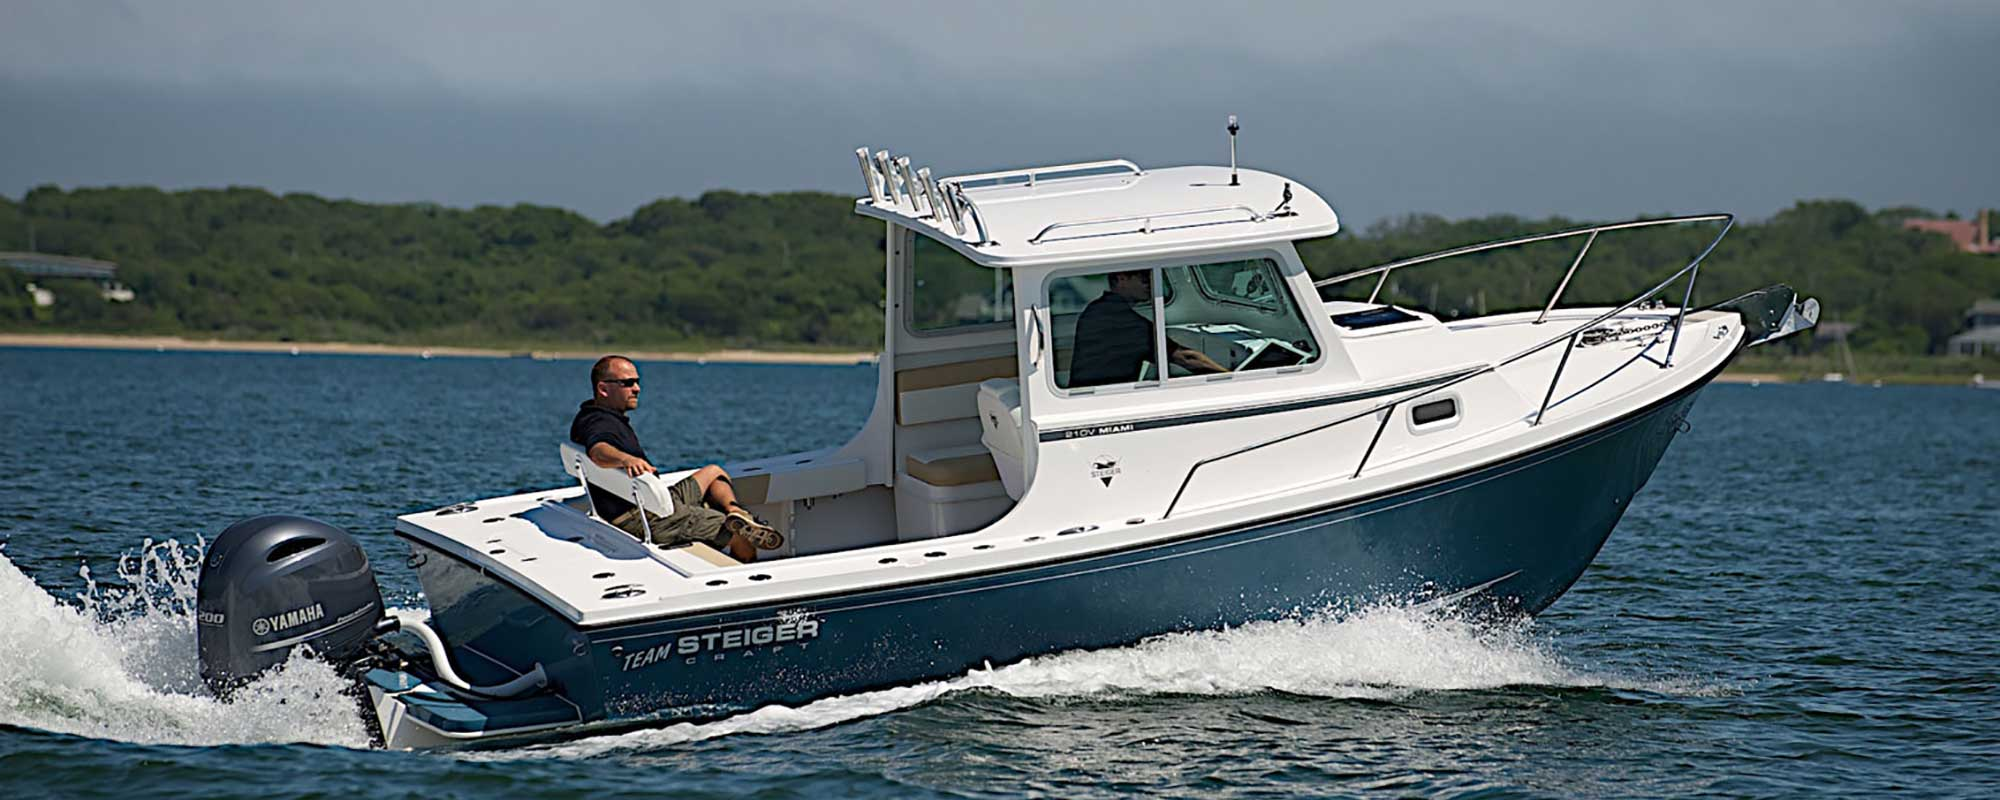 Steiger Craft 21 DV Miami cruising